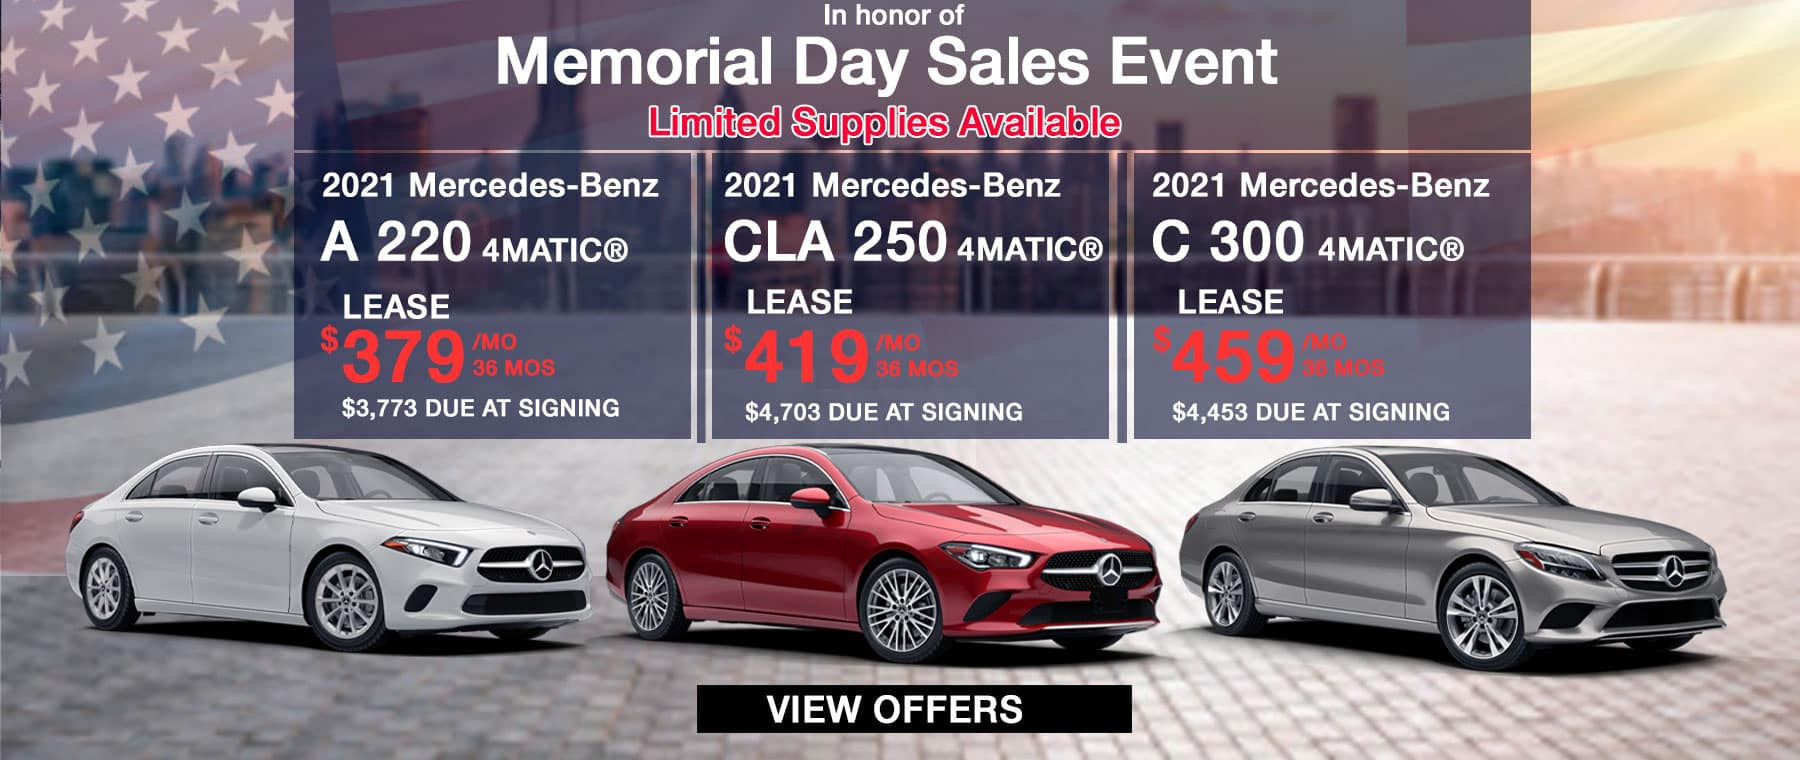 May-Mercedes-Benz-Cherry-Hill-1